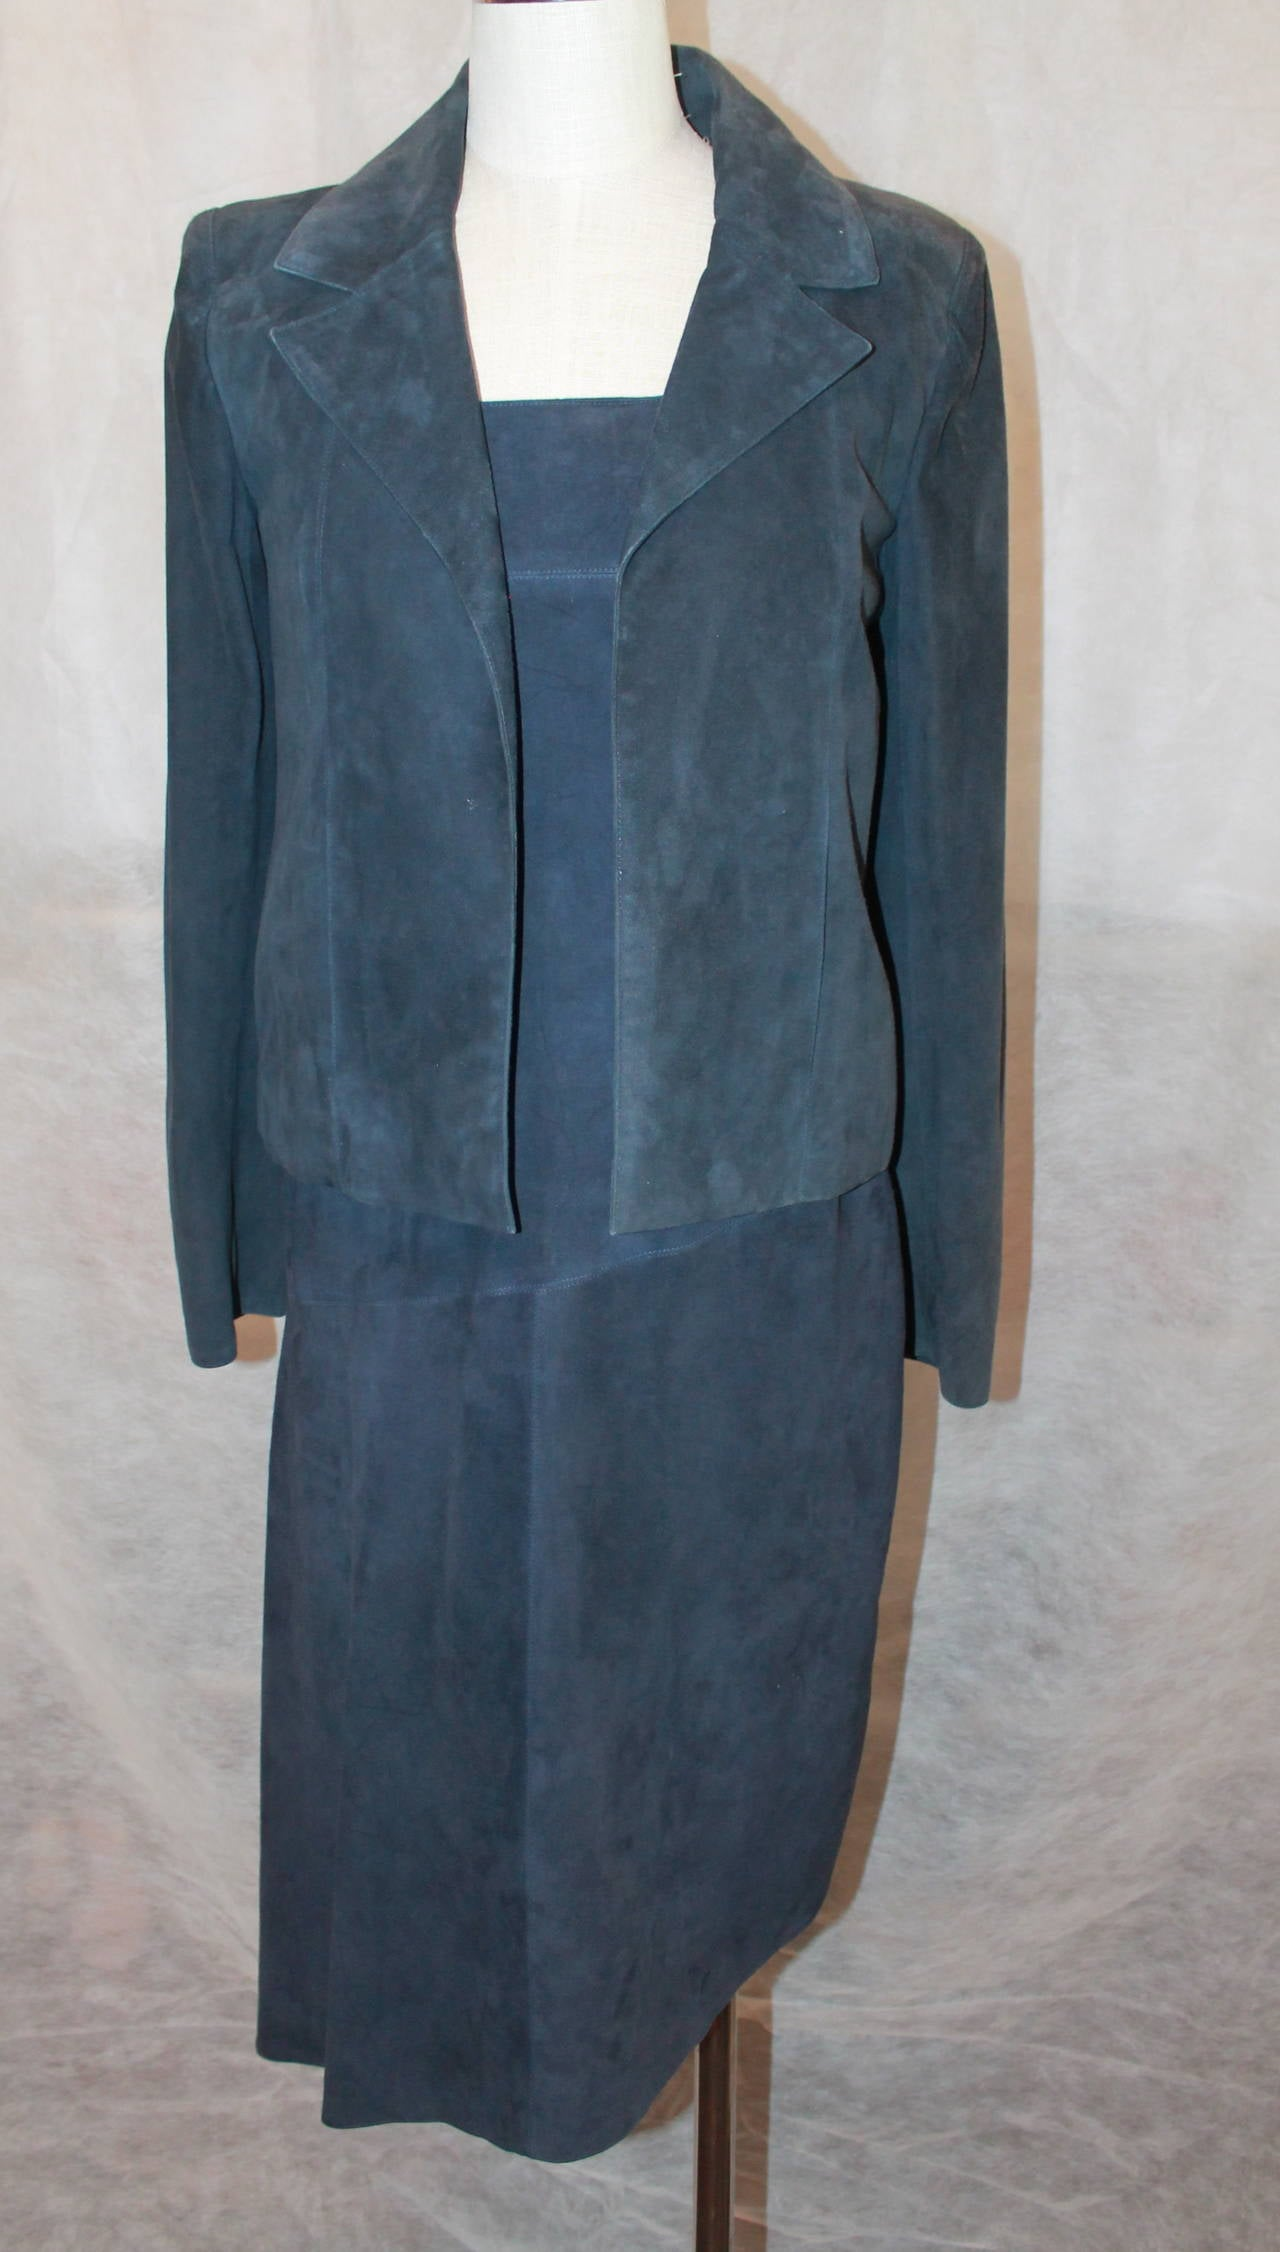 2002 Chanel Navy Suede Two Piece Dress and Jacket. Dress is Marked a Size 38 and Jacket is Marked a Size 36. Dress is Sleeveless with an Asymmetrical Hem and Jacket is a Blazer Style with no Buttons and Two Front Side Pockets.  Jacket